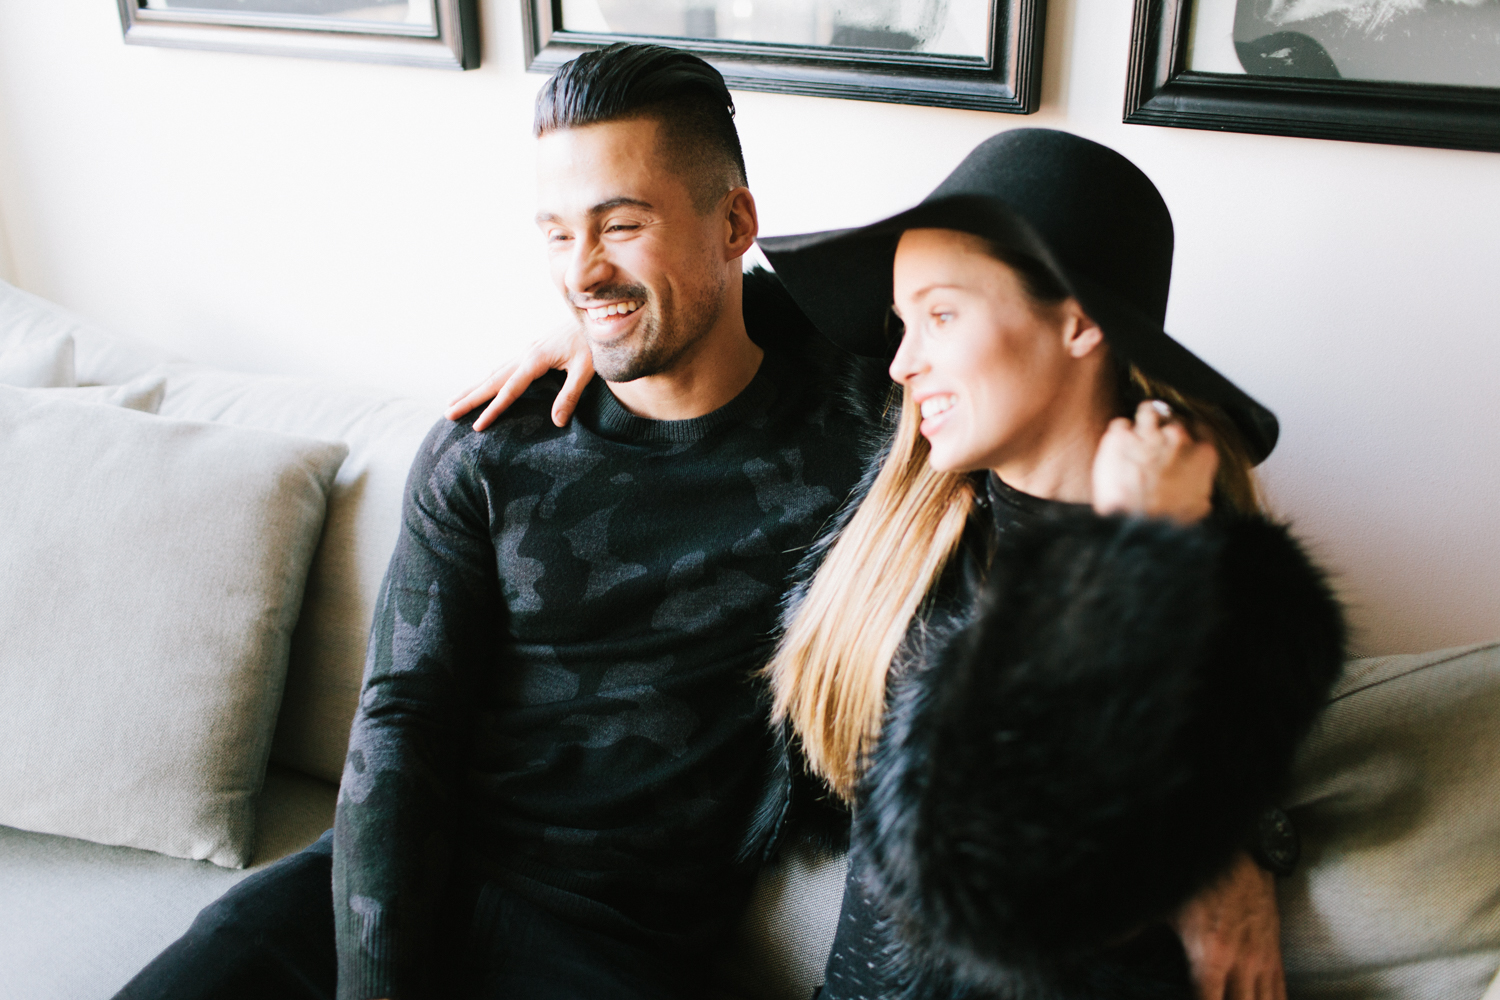 Jodi-Blk-fashion-blogger-Jose-Lopez-fit-michael-rousseau-photography-streetwear-fashion-engagement-session023.jpg